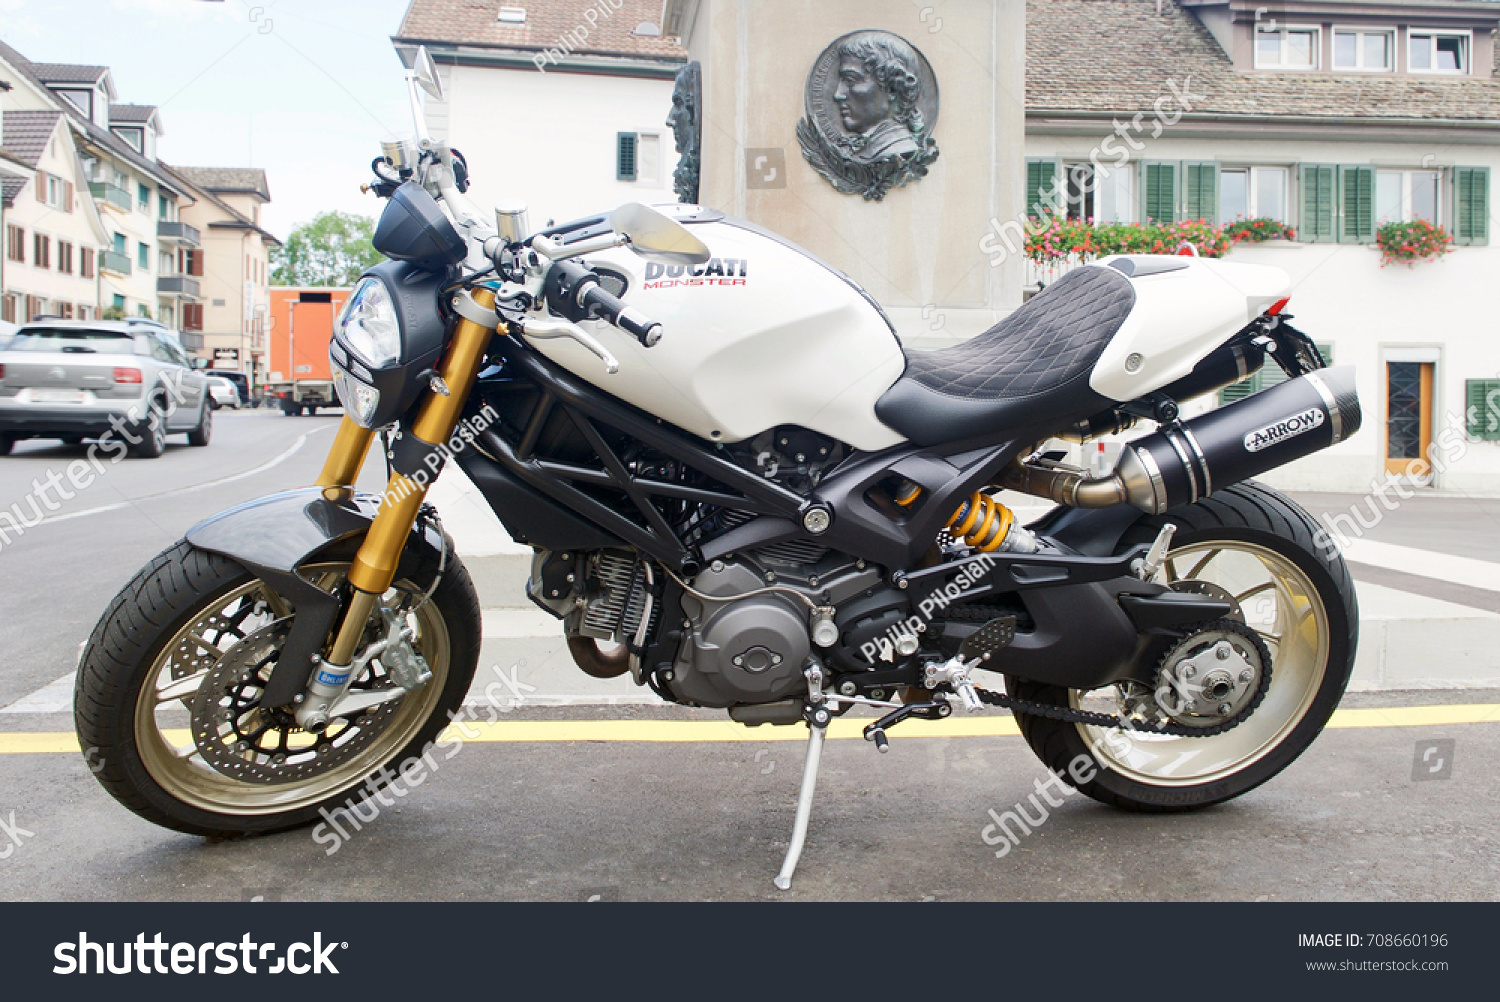 Aug 25 2017 Ducati Monster Motorcycle Stock Photo Edit Now